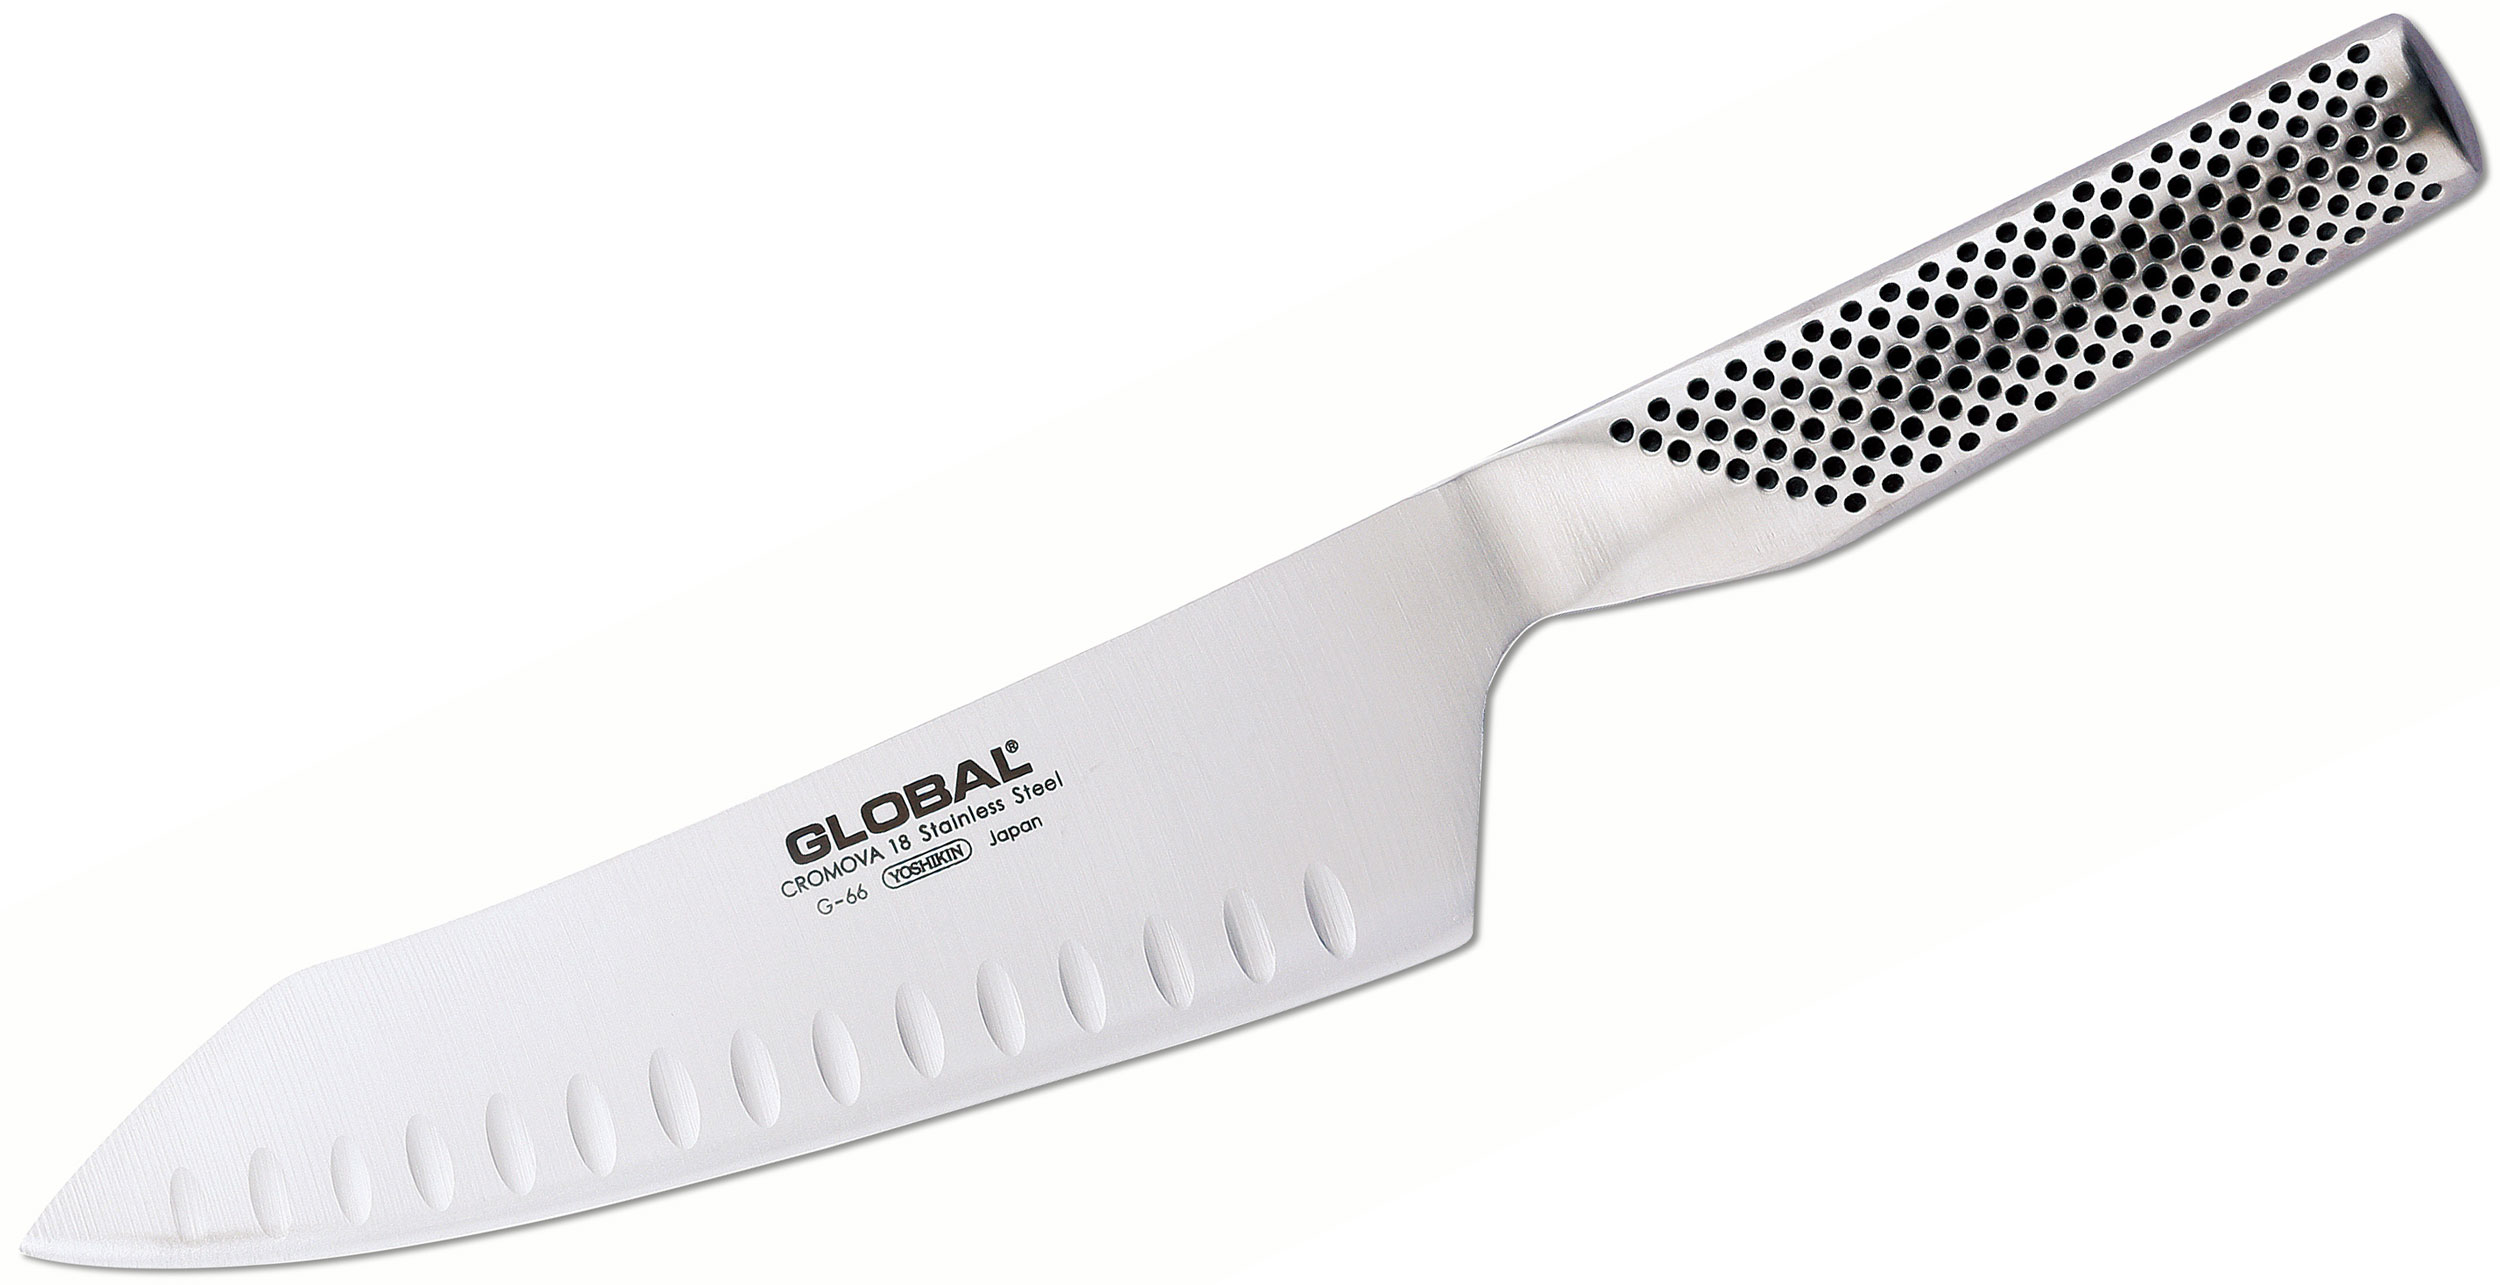 Buy Global Santoku Knives at KnifeCenter